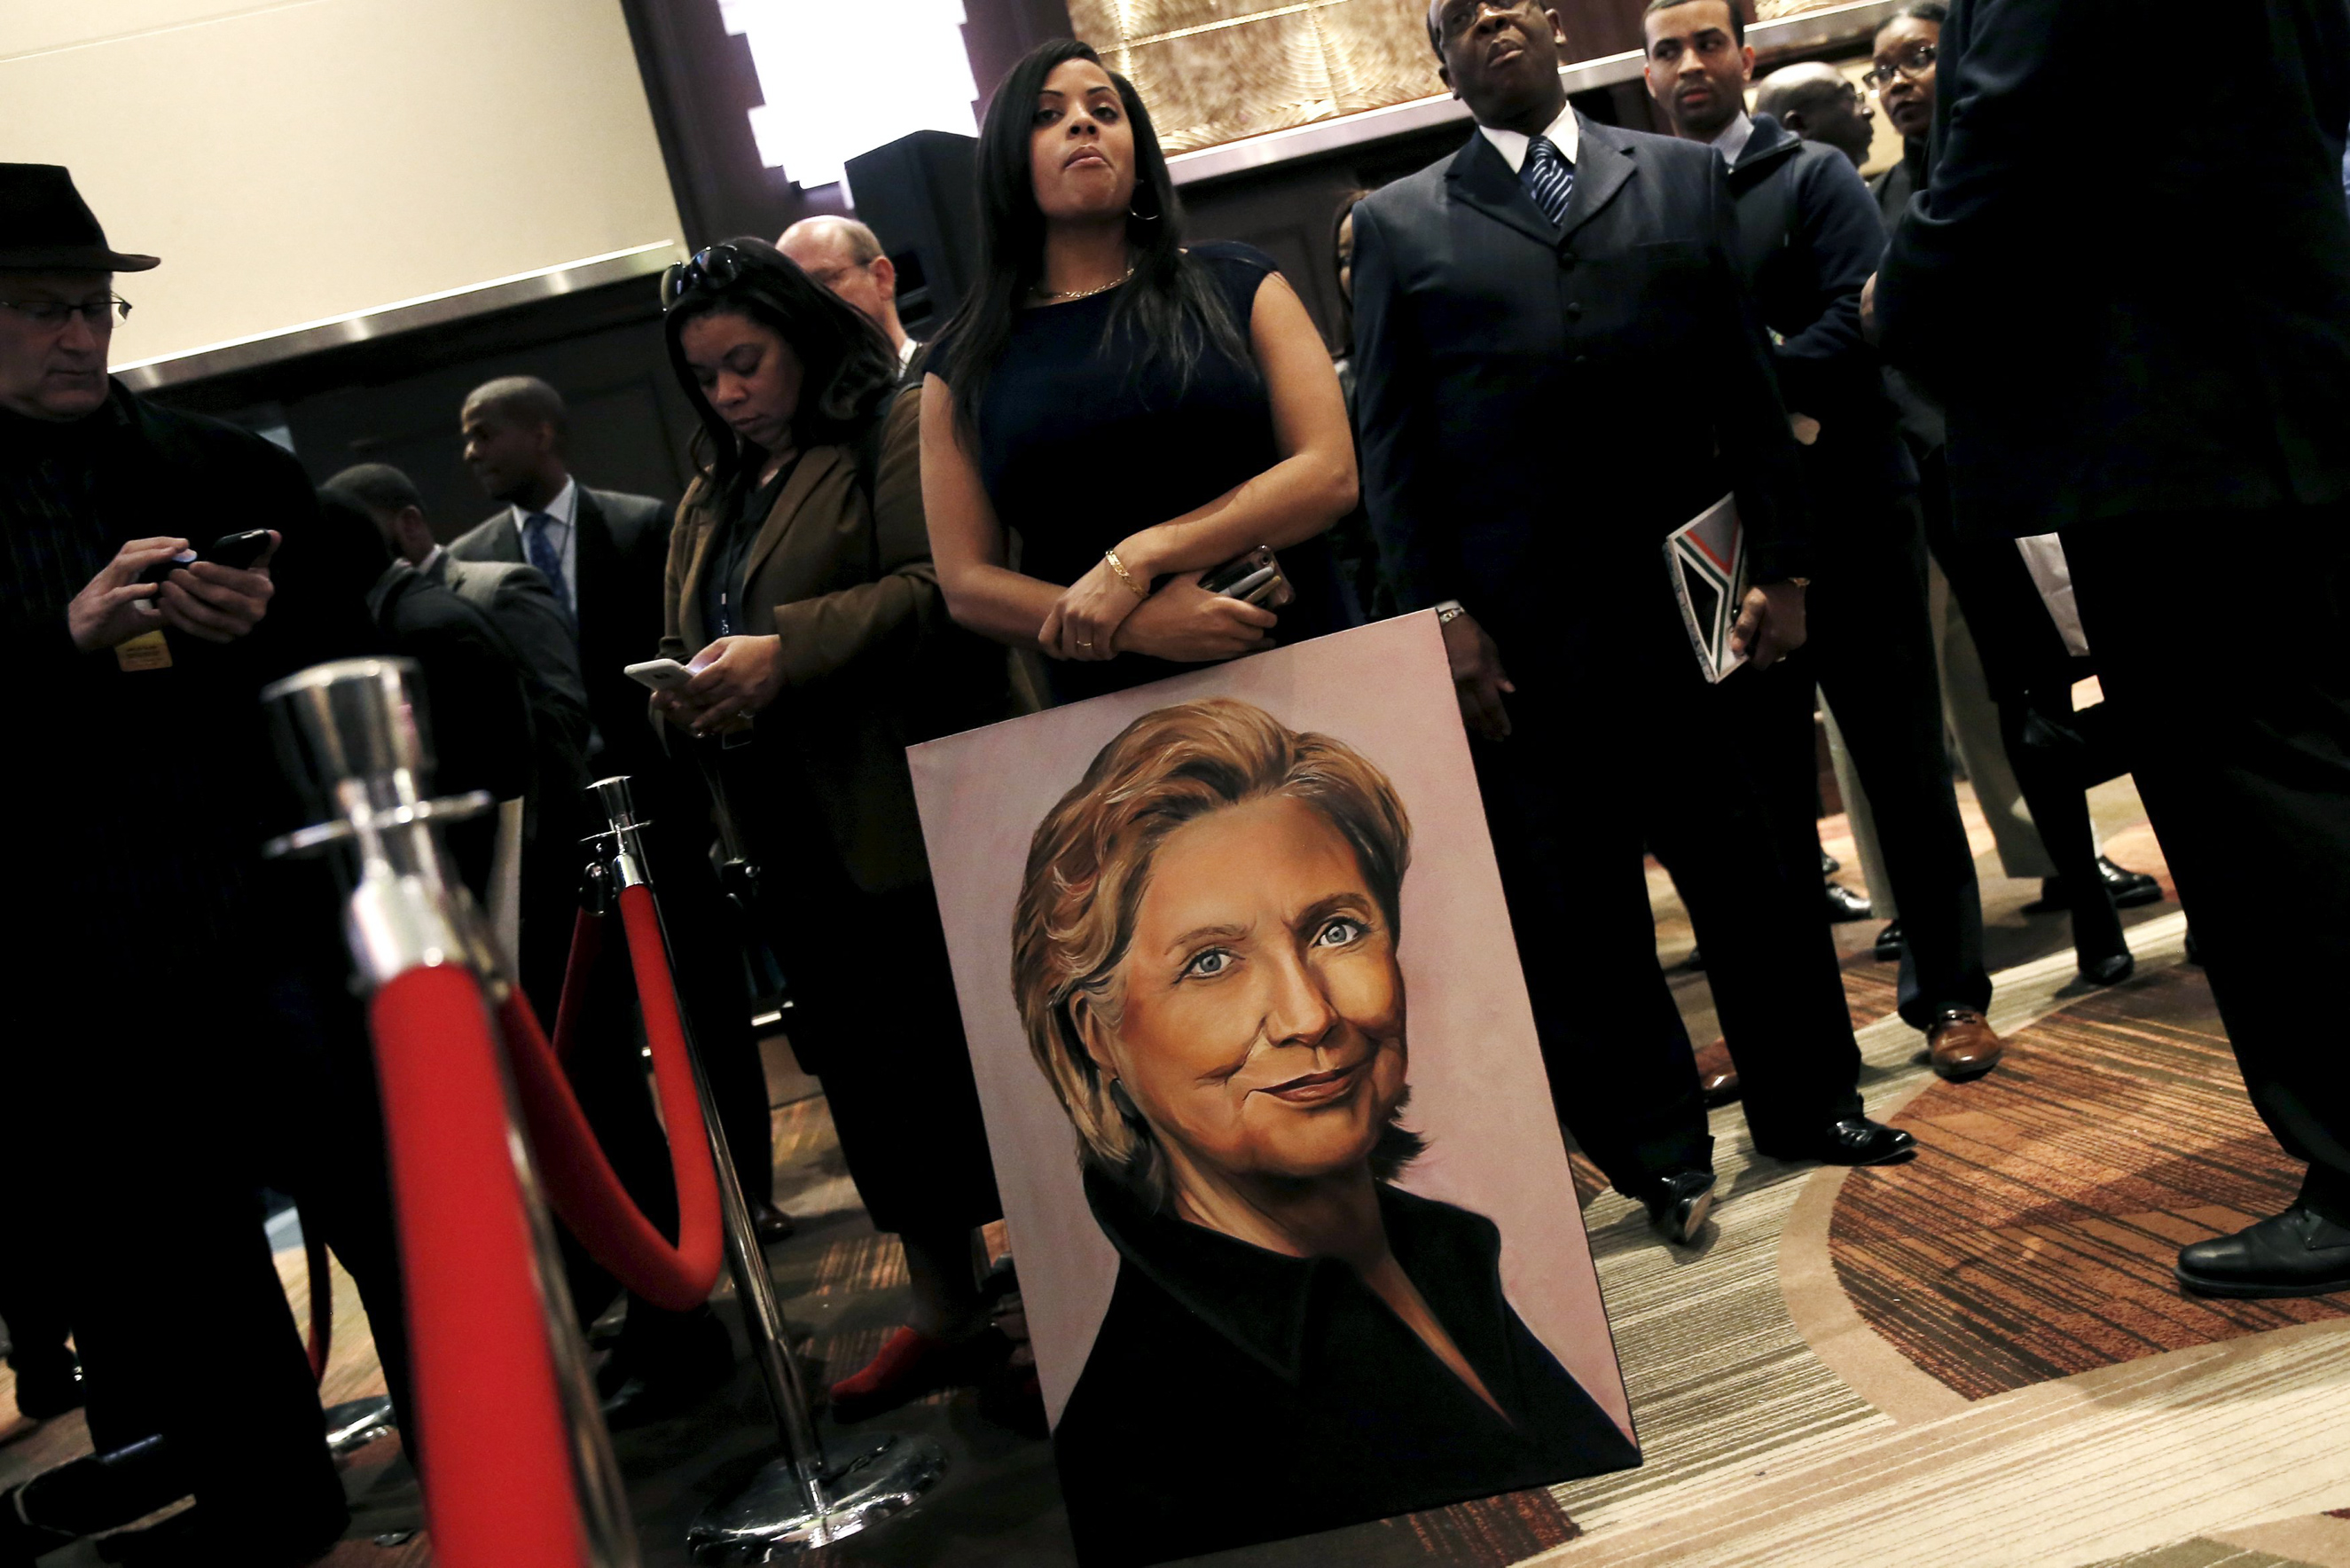 A supporter of Hillary Clinton stands with a painting at the National Action Network's 25th Annual Convention in New York on April 13, 2016.